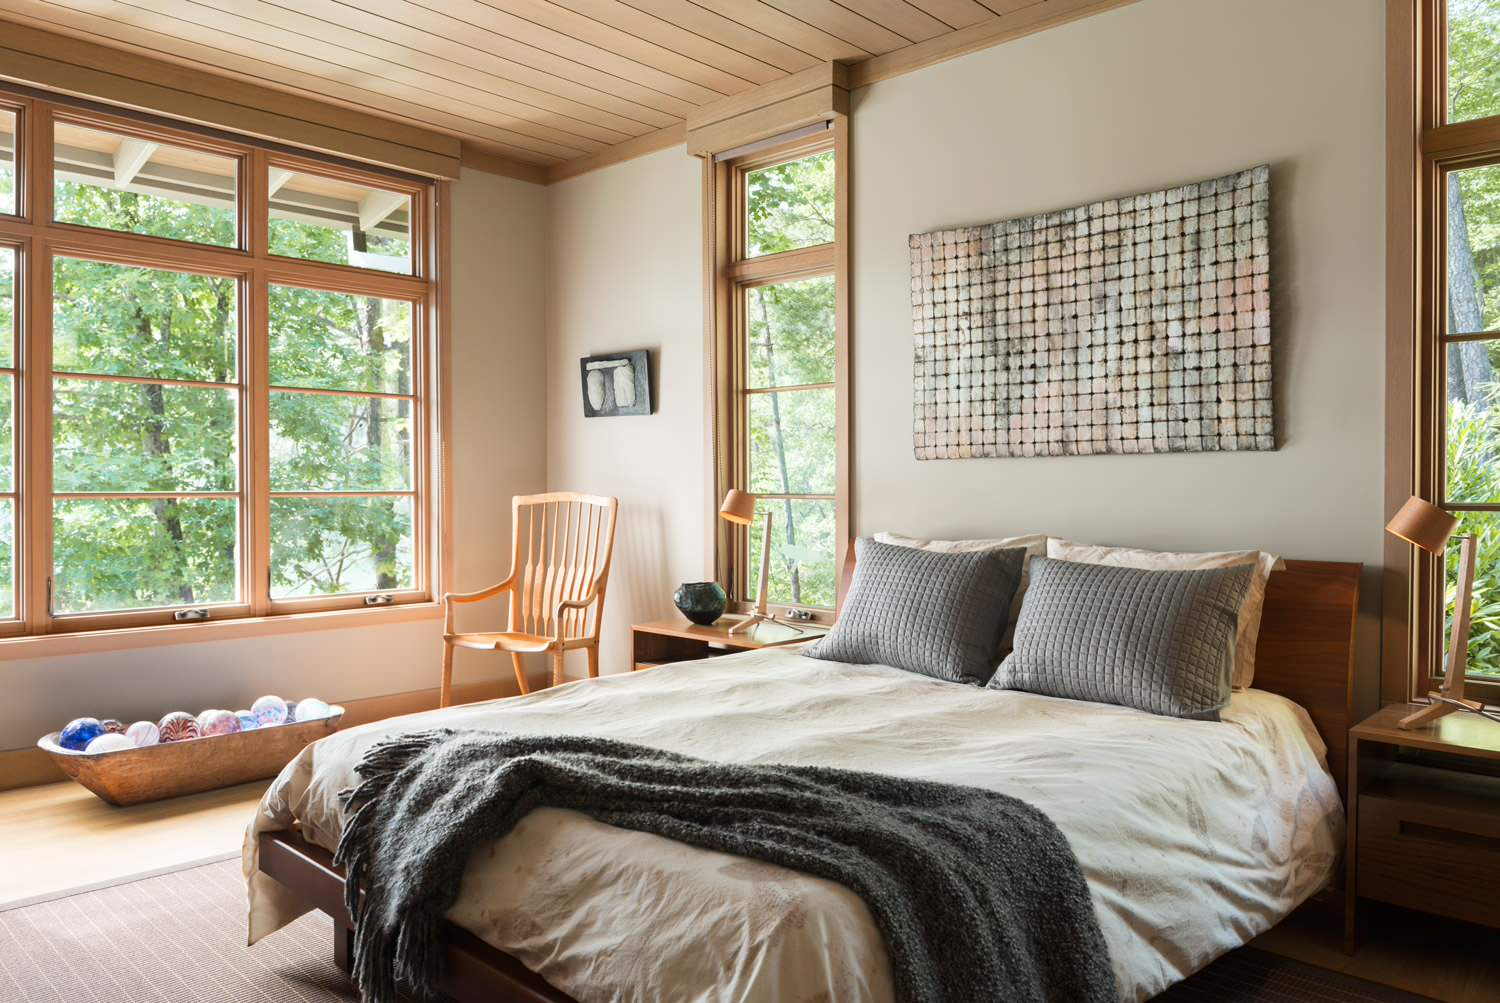 12 Beautiful Rustic Master Bedroom Pictures & Ideas - January